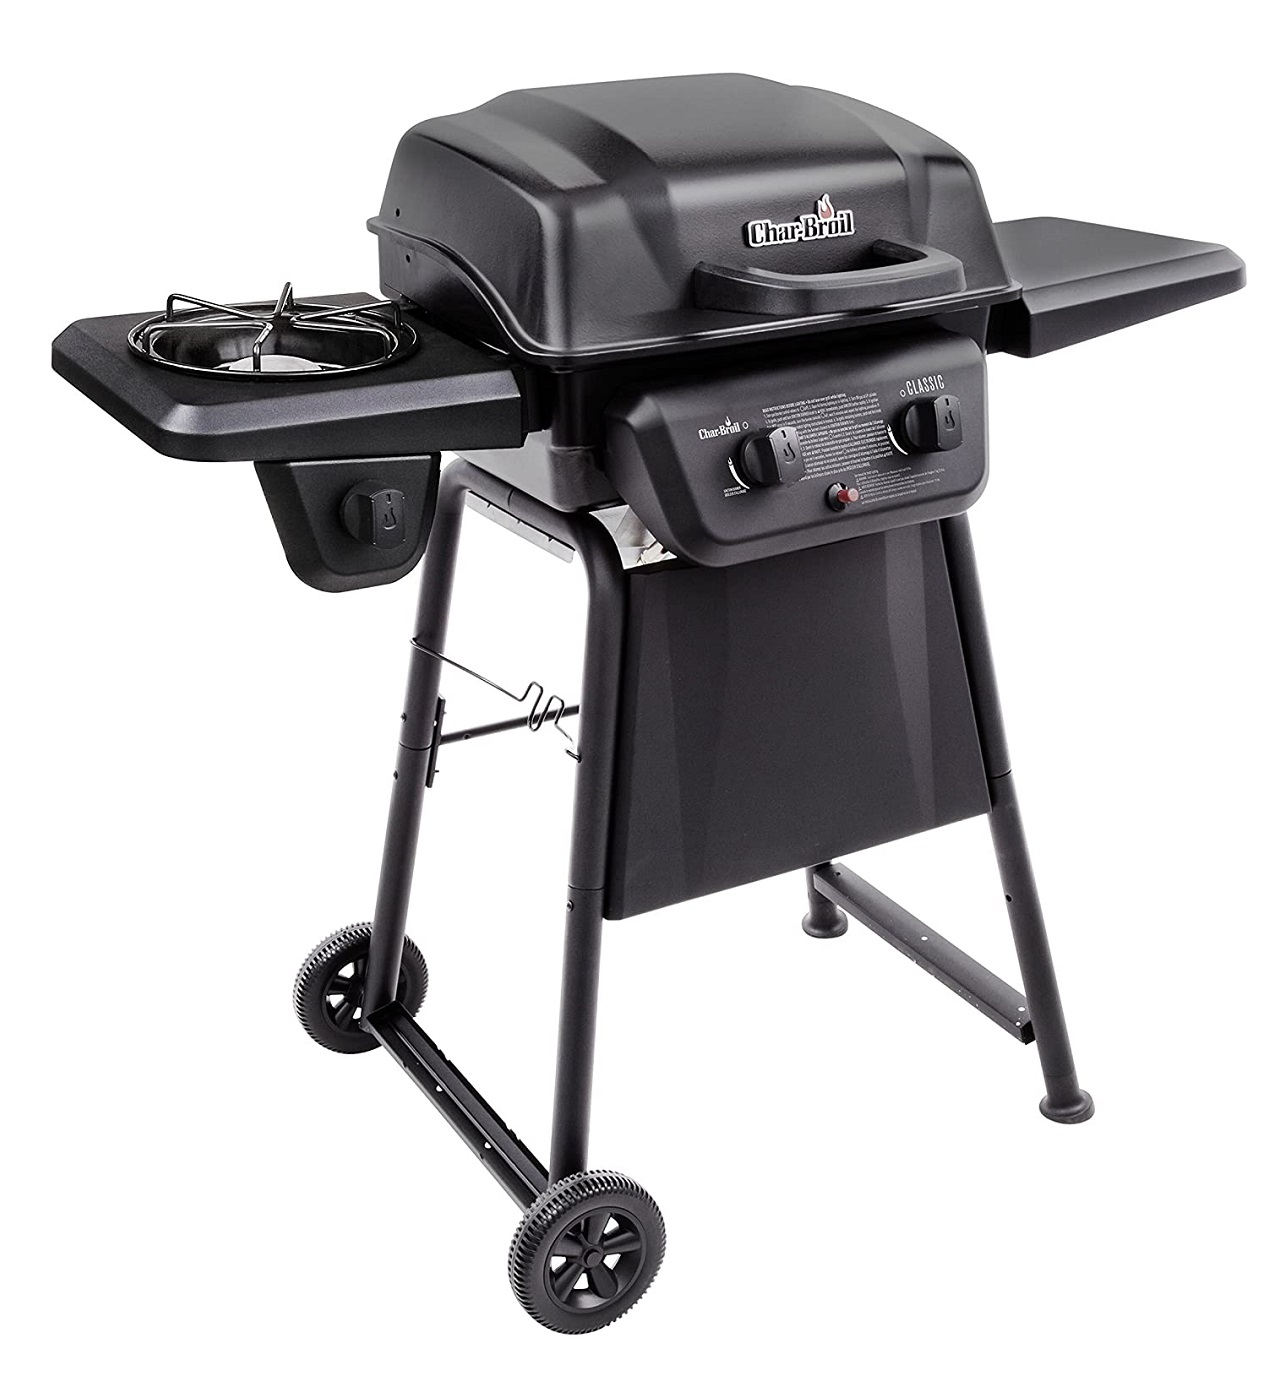 Char-Broil Classic 280 2-Burner - Best Gas Grills Under 150